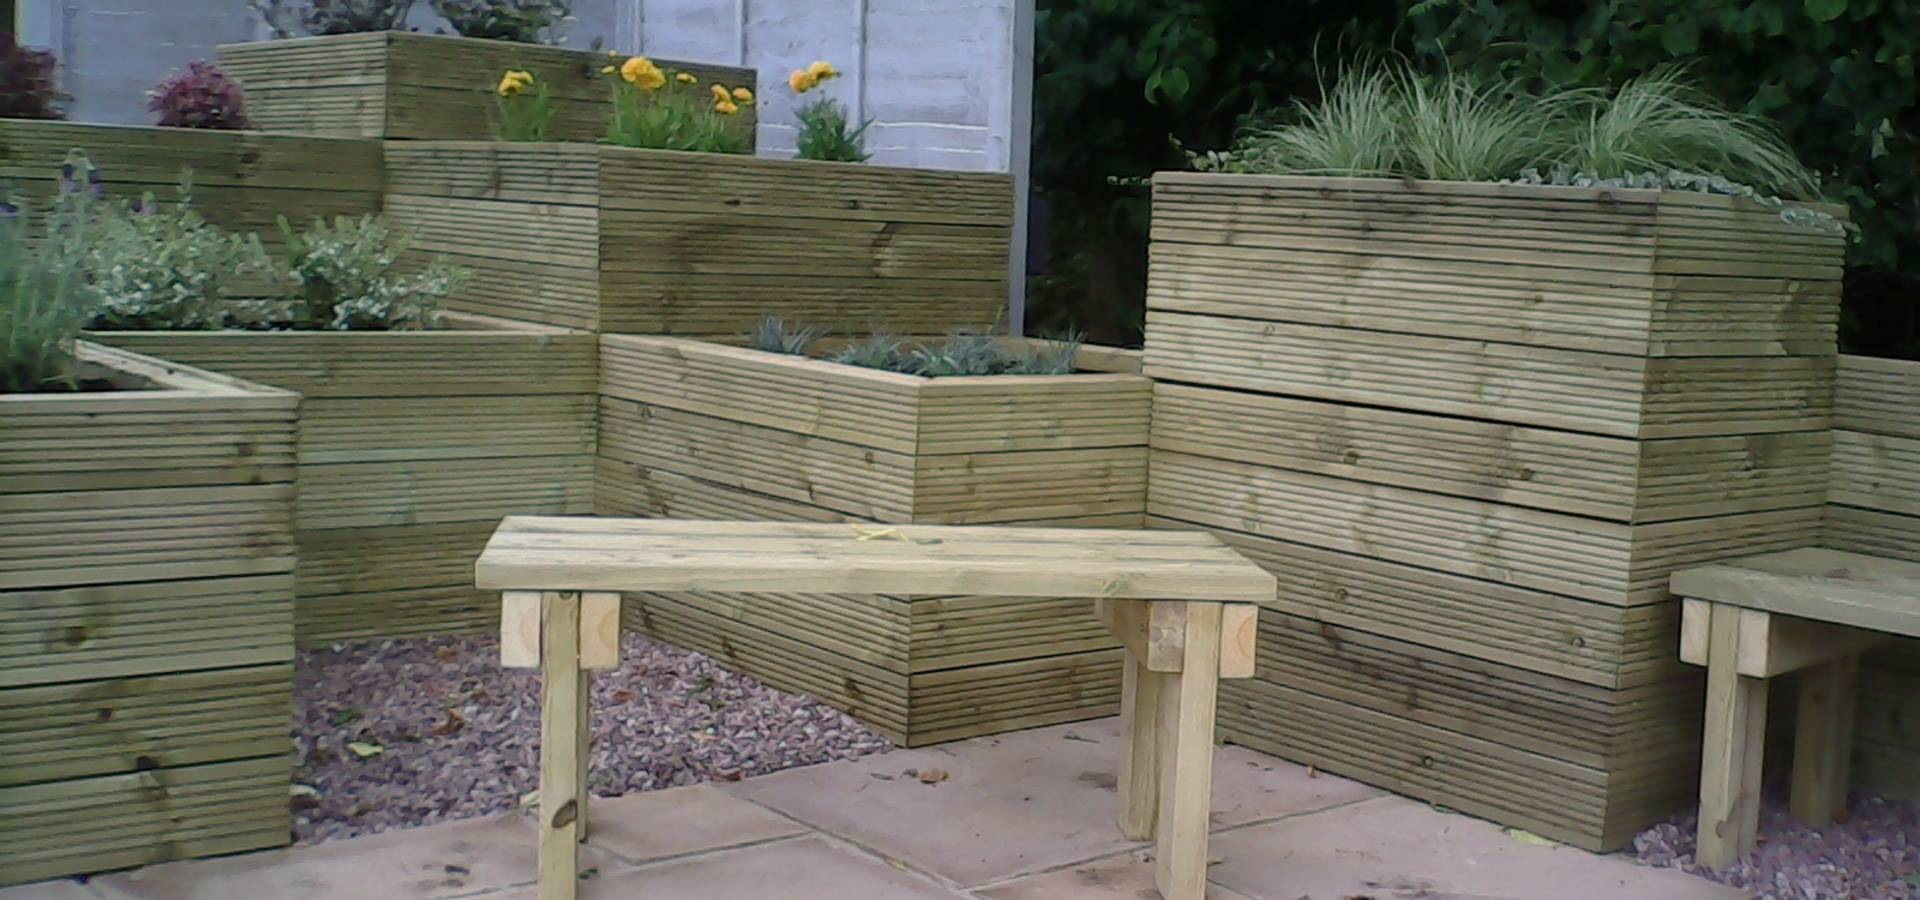 Sd garden designs art culos de jardiner a en peterborough for Articulos para jardineria